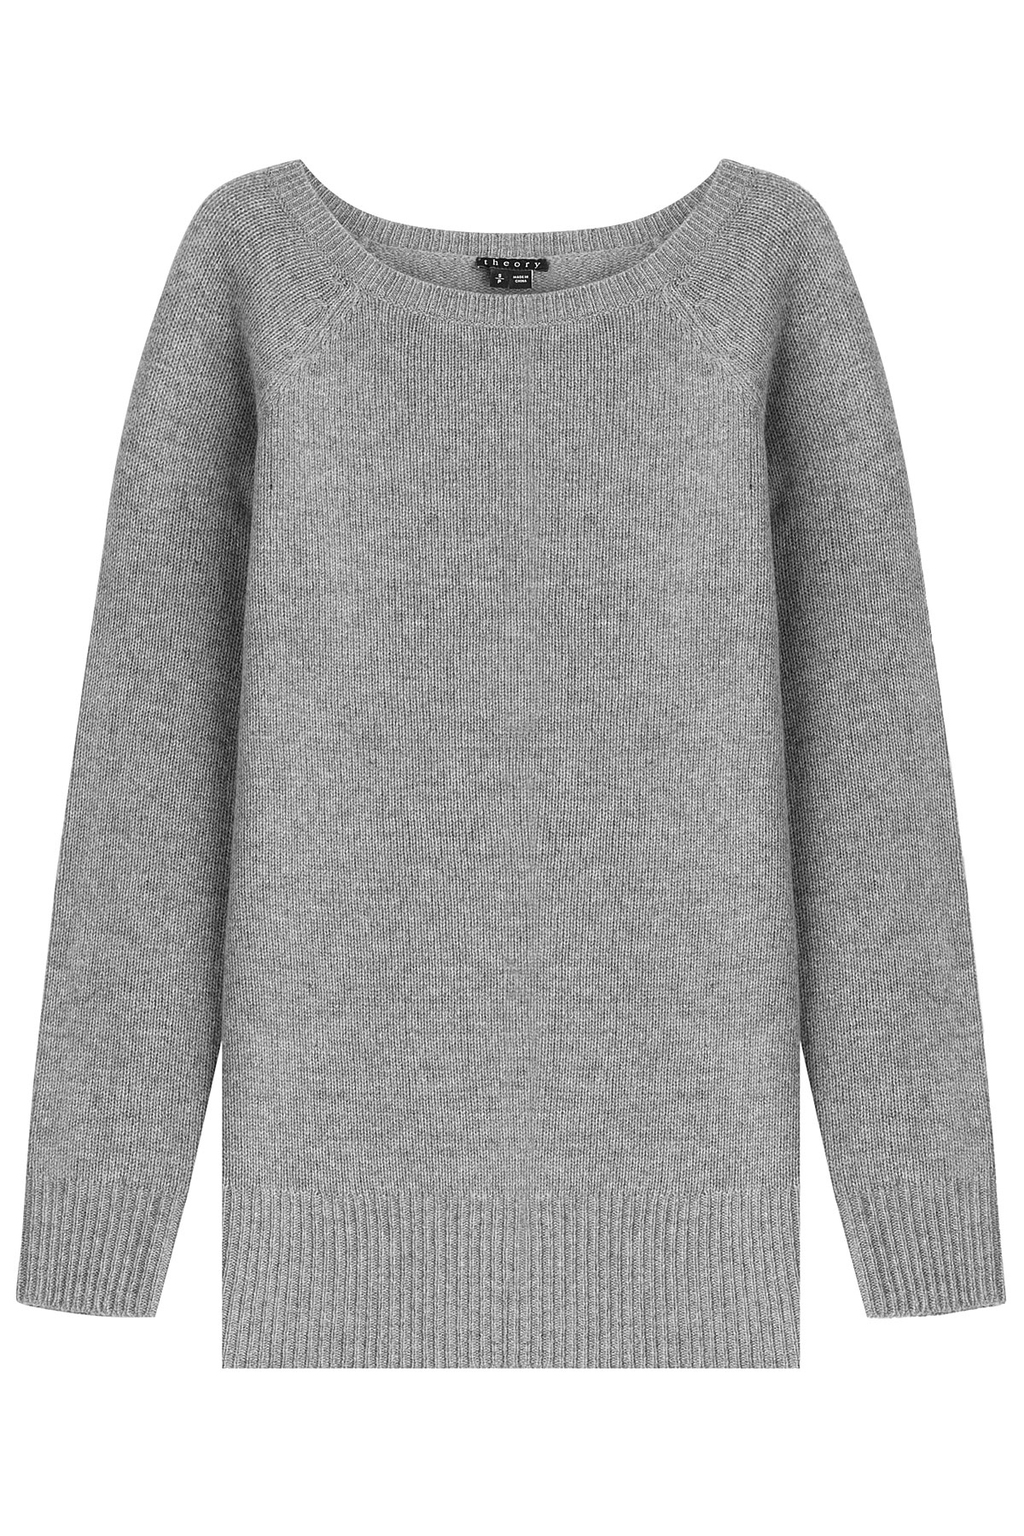 Cashmere Pullover Grey - neckline: round neck; pattern: plain; style: standard; predominant colour: mid grey; occasions: casual; length: standard; fit: loose; fibres: cashmere - 100%; sleeve length: long sleeve; sleeve style: standard; texture group: knits/crochet; pattern type: fabric; season: a/w 2015; wardrobe: investment